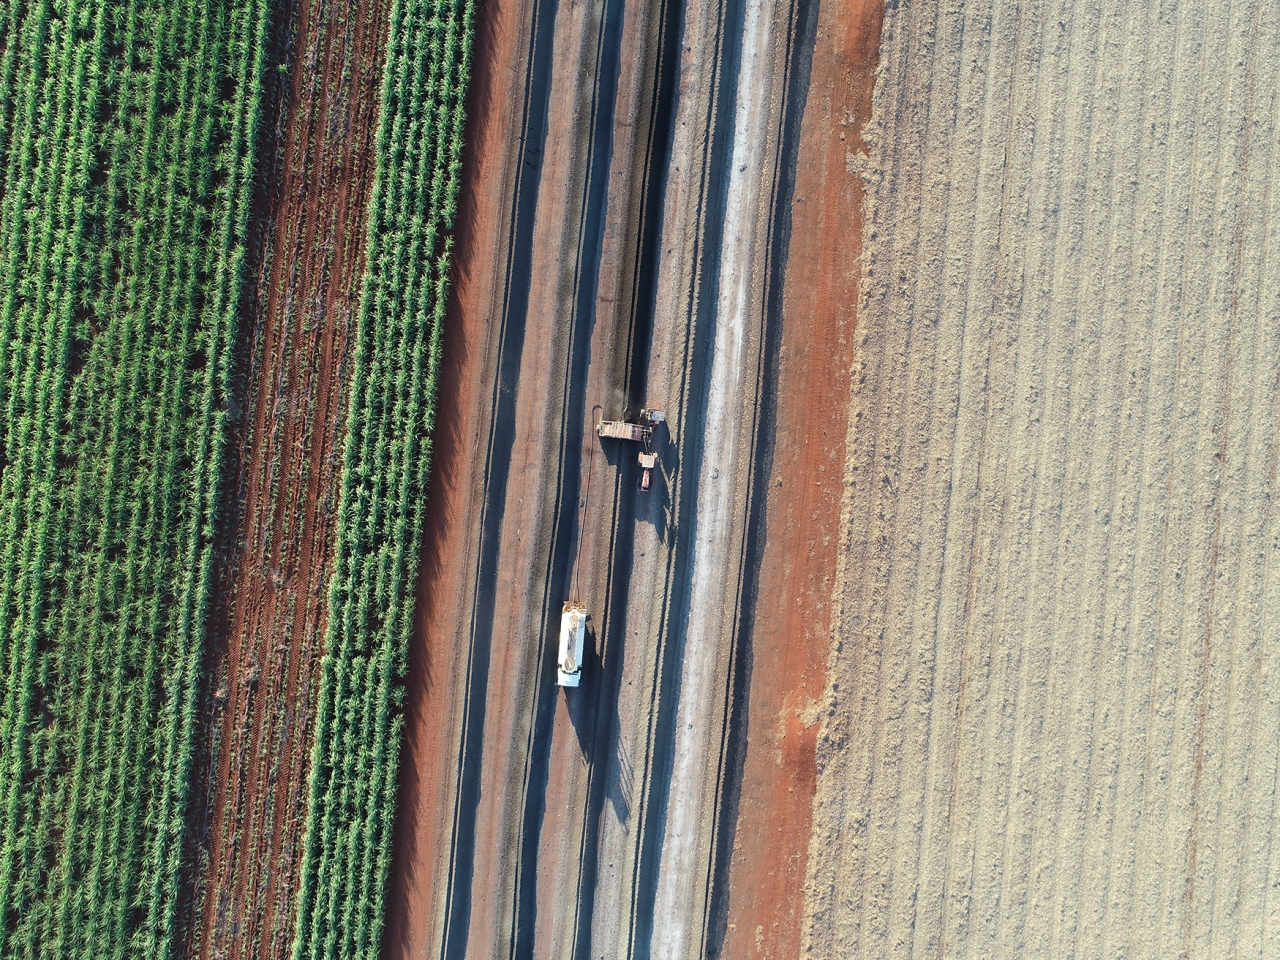 Sugarcane harvest in Brazil